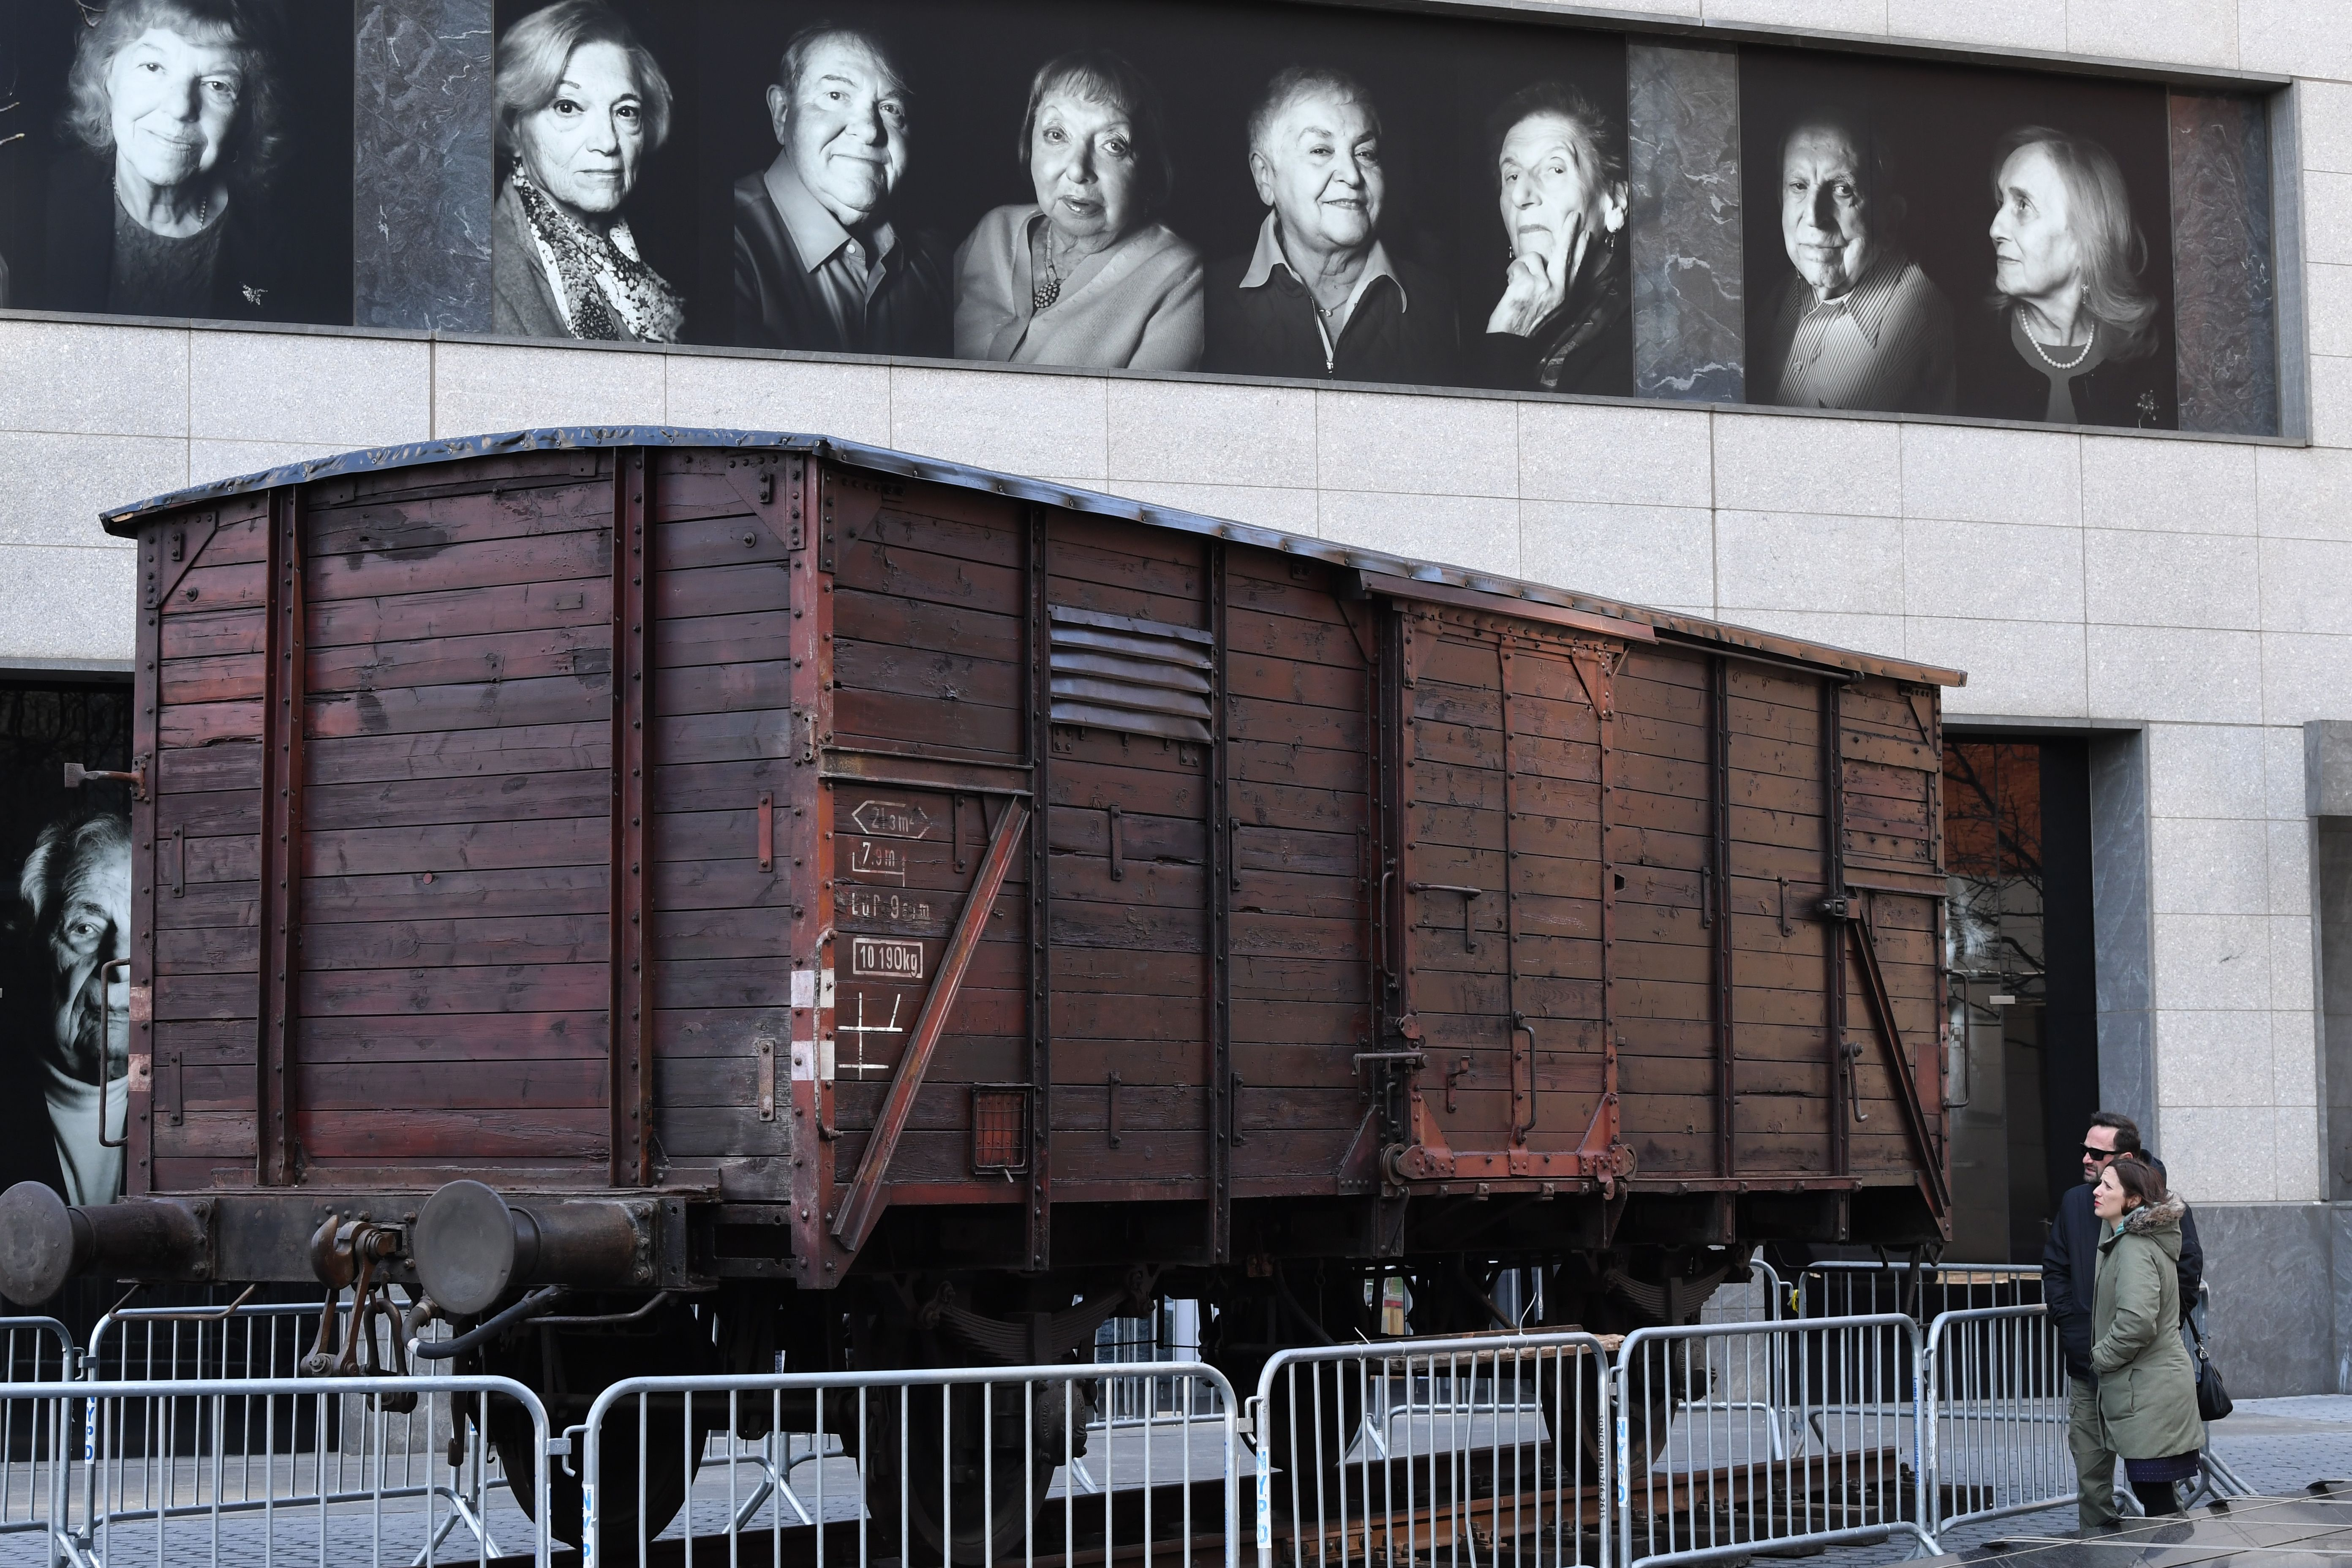 Portraits of Holocaust survivors are displayed on April 2, 2019 at the Museum of Jewish Heritage, as a vintage German train car, like those used to transport people to Auschwitz and other Nazi death camps, is seen in front of the building in New York. (TIMOTHY A. CLARY/AFP/Getty Images)